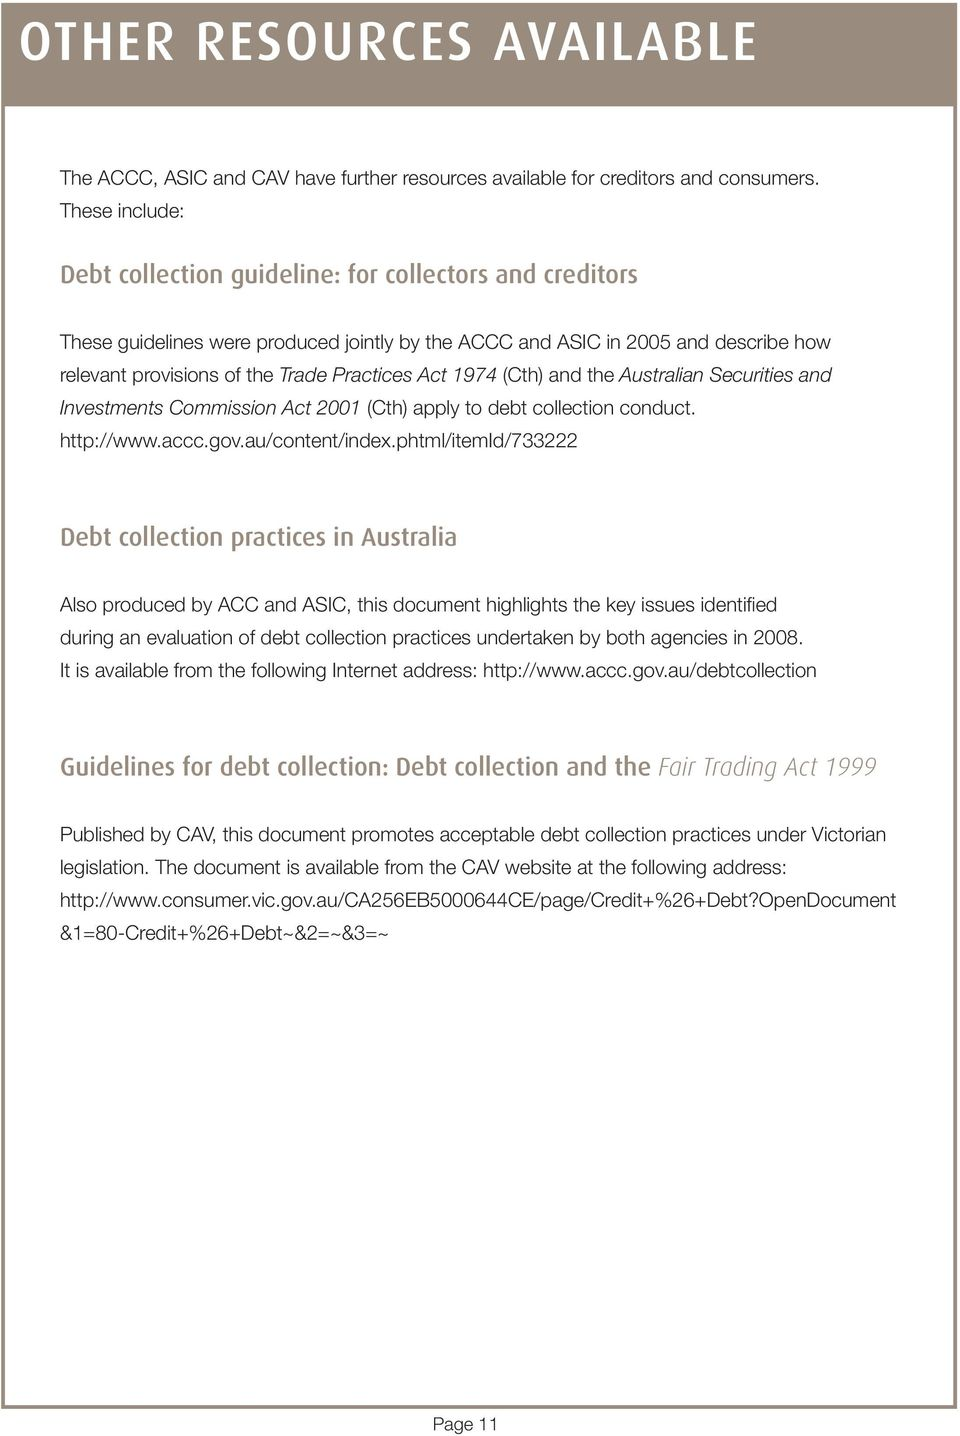 Act 1974 (Cth) and the Australian Securities and Investments Commission Act 2001 (Cth) apply to debt collection conduct. http://www.accc.gov.au/content/index.